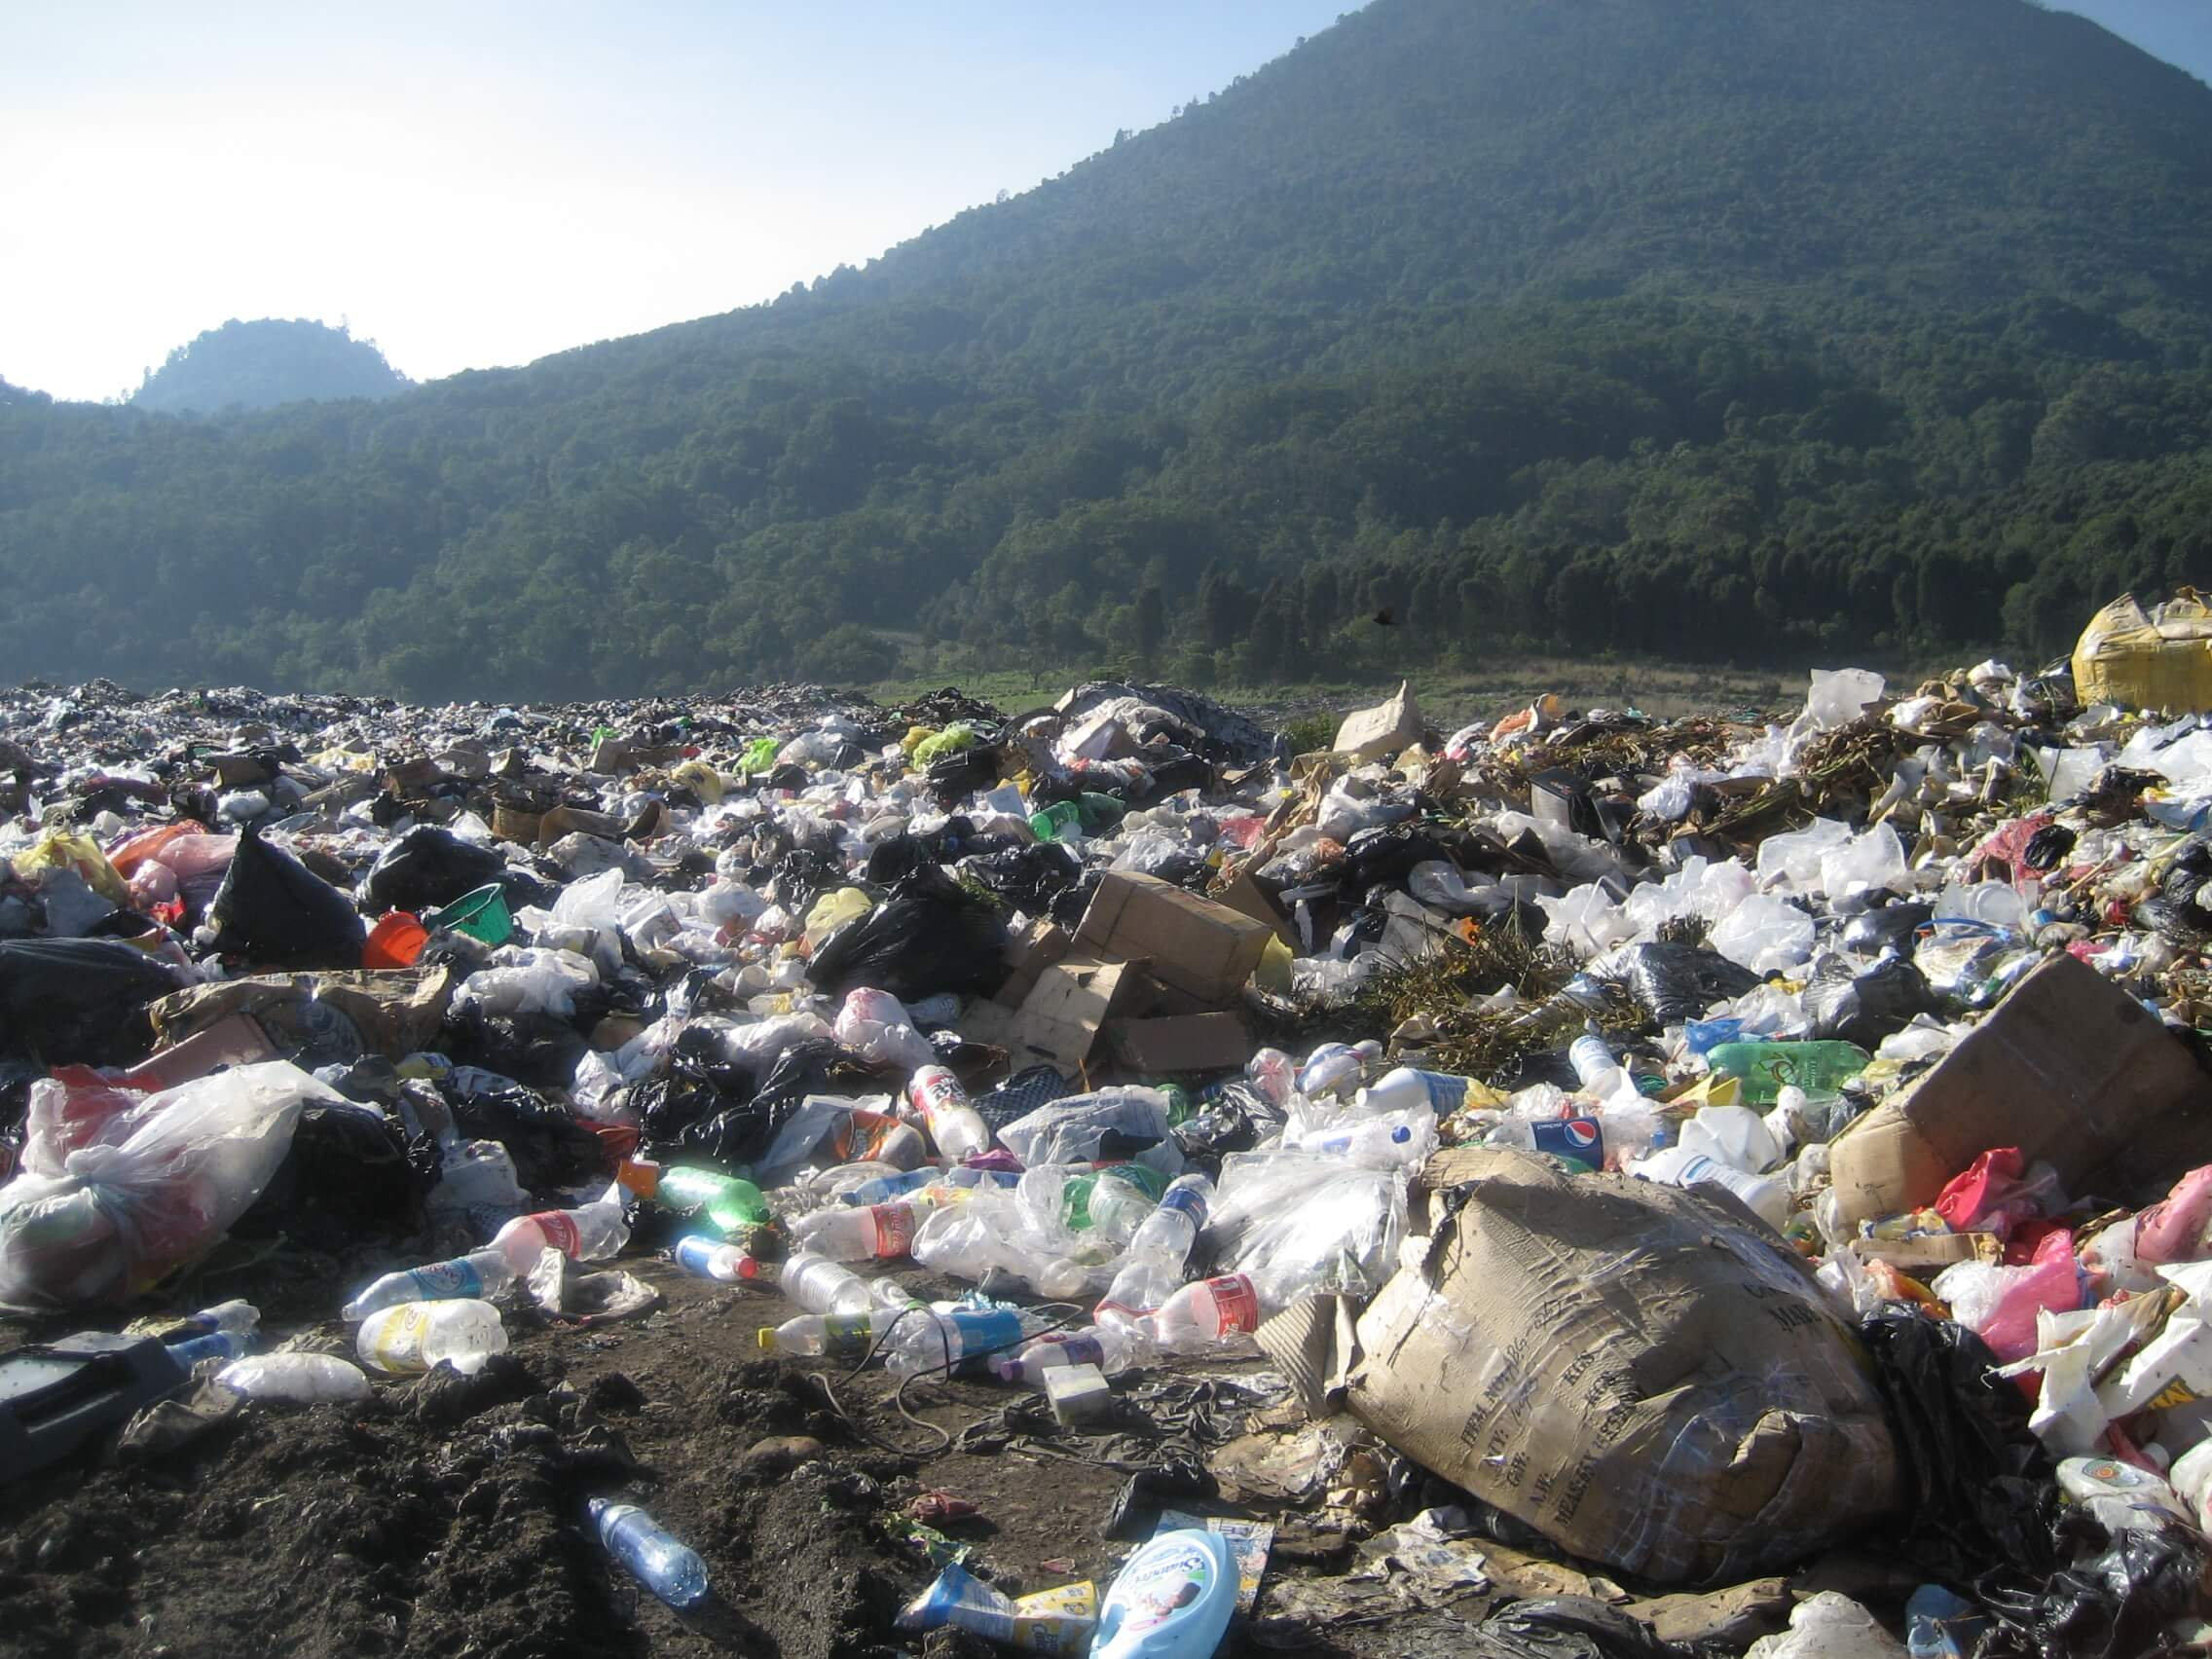 In most smaller villages in Guatemala, there is no garbage dump or designated place to throw trash. This has polluted many of their streams, rivers, and water-ways.